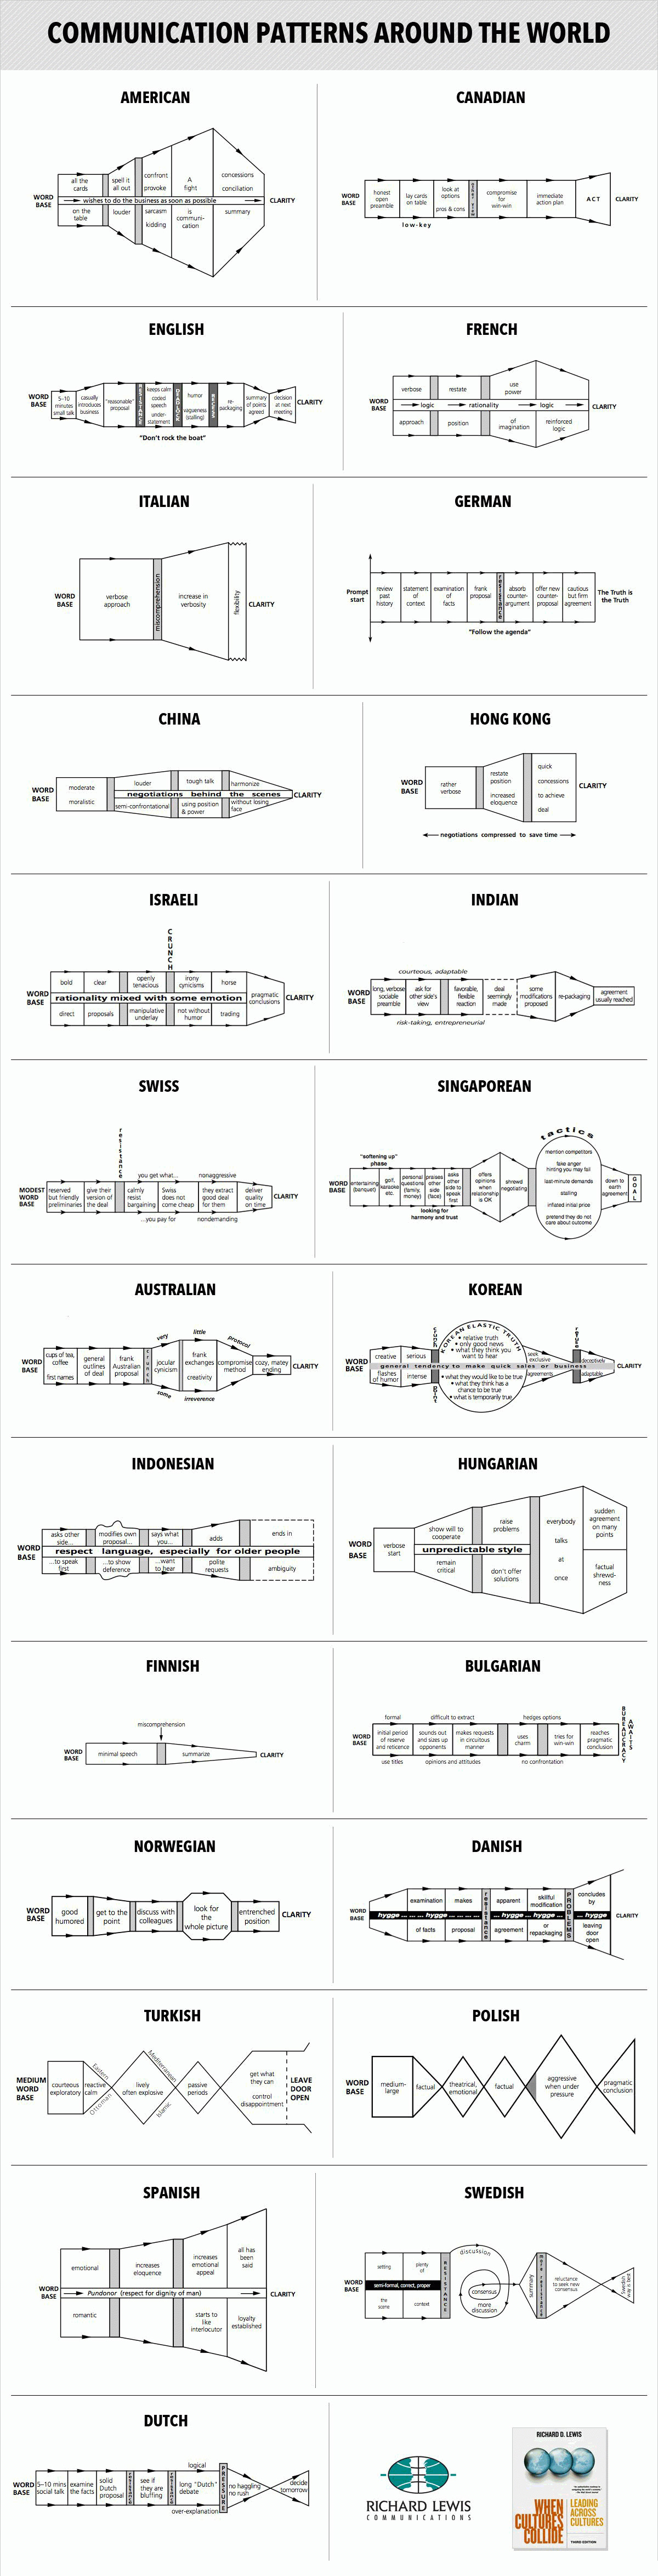 Communication Charts by Richard D. Lewis